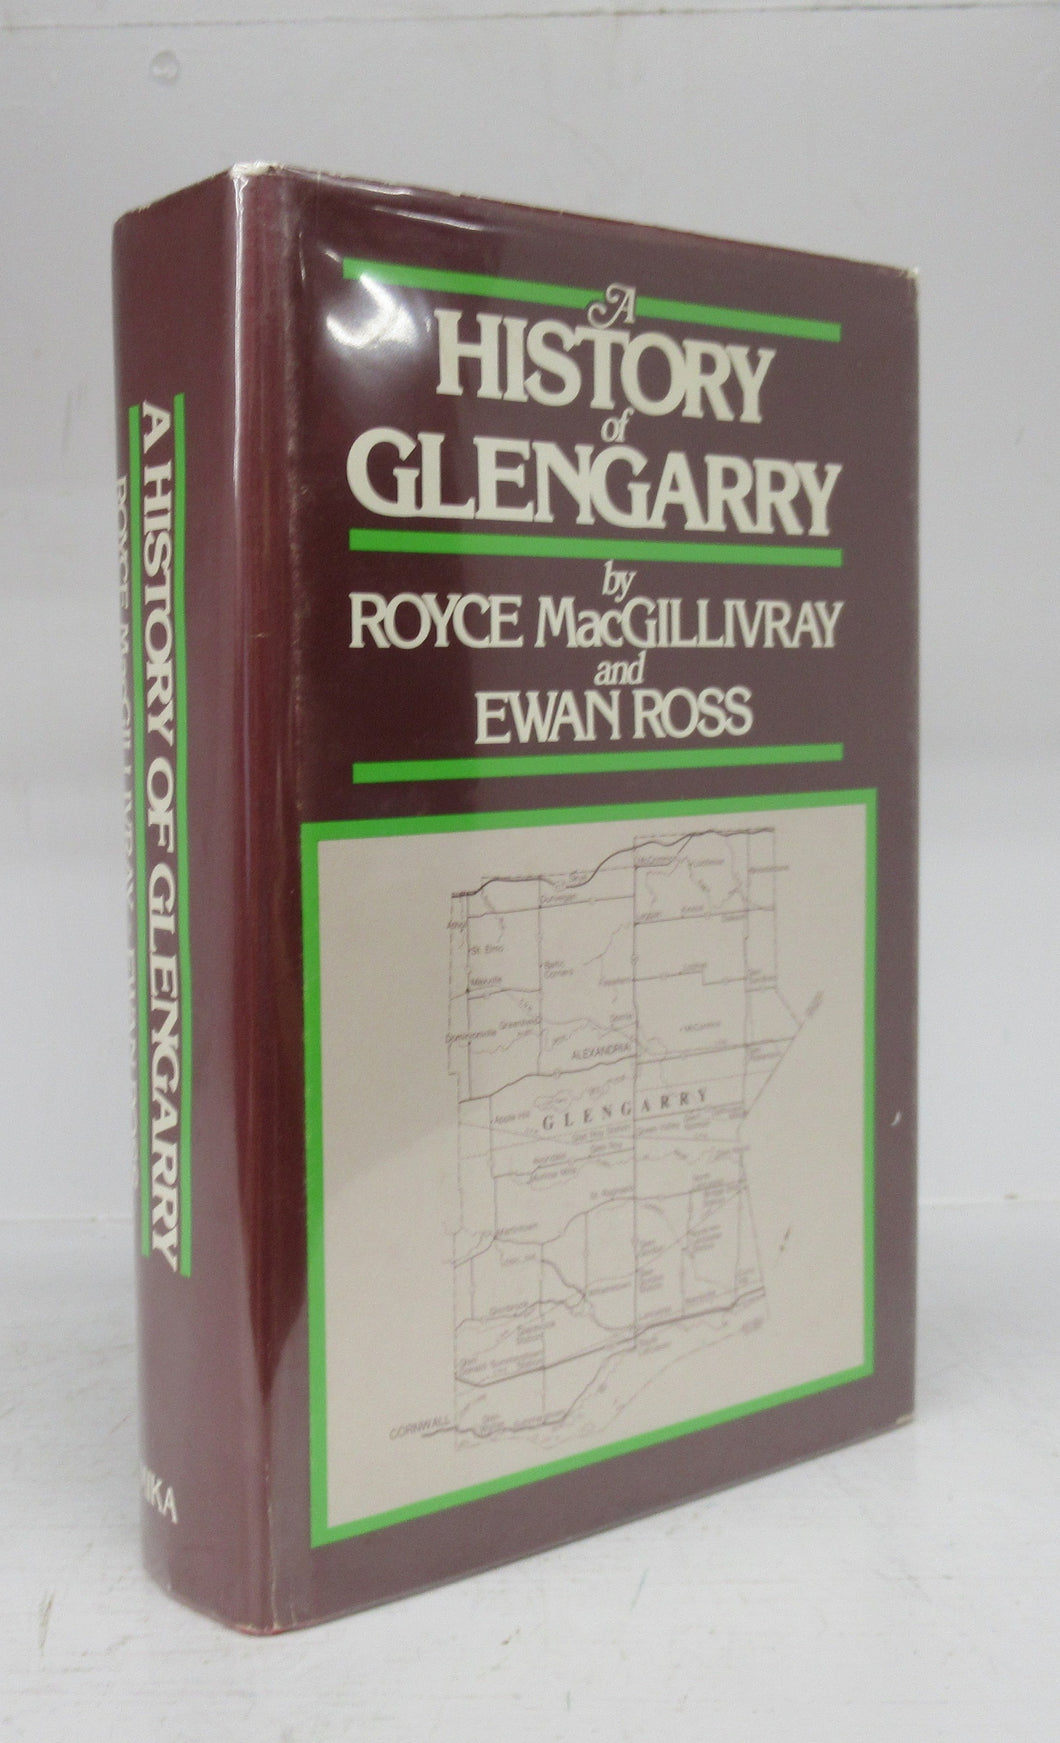 A History of Glengarry